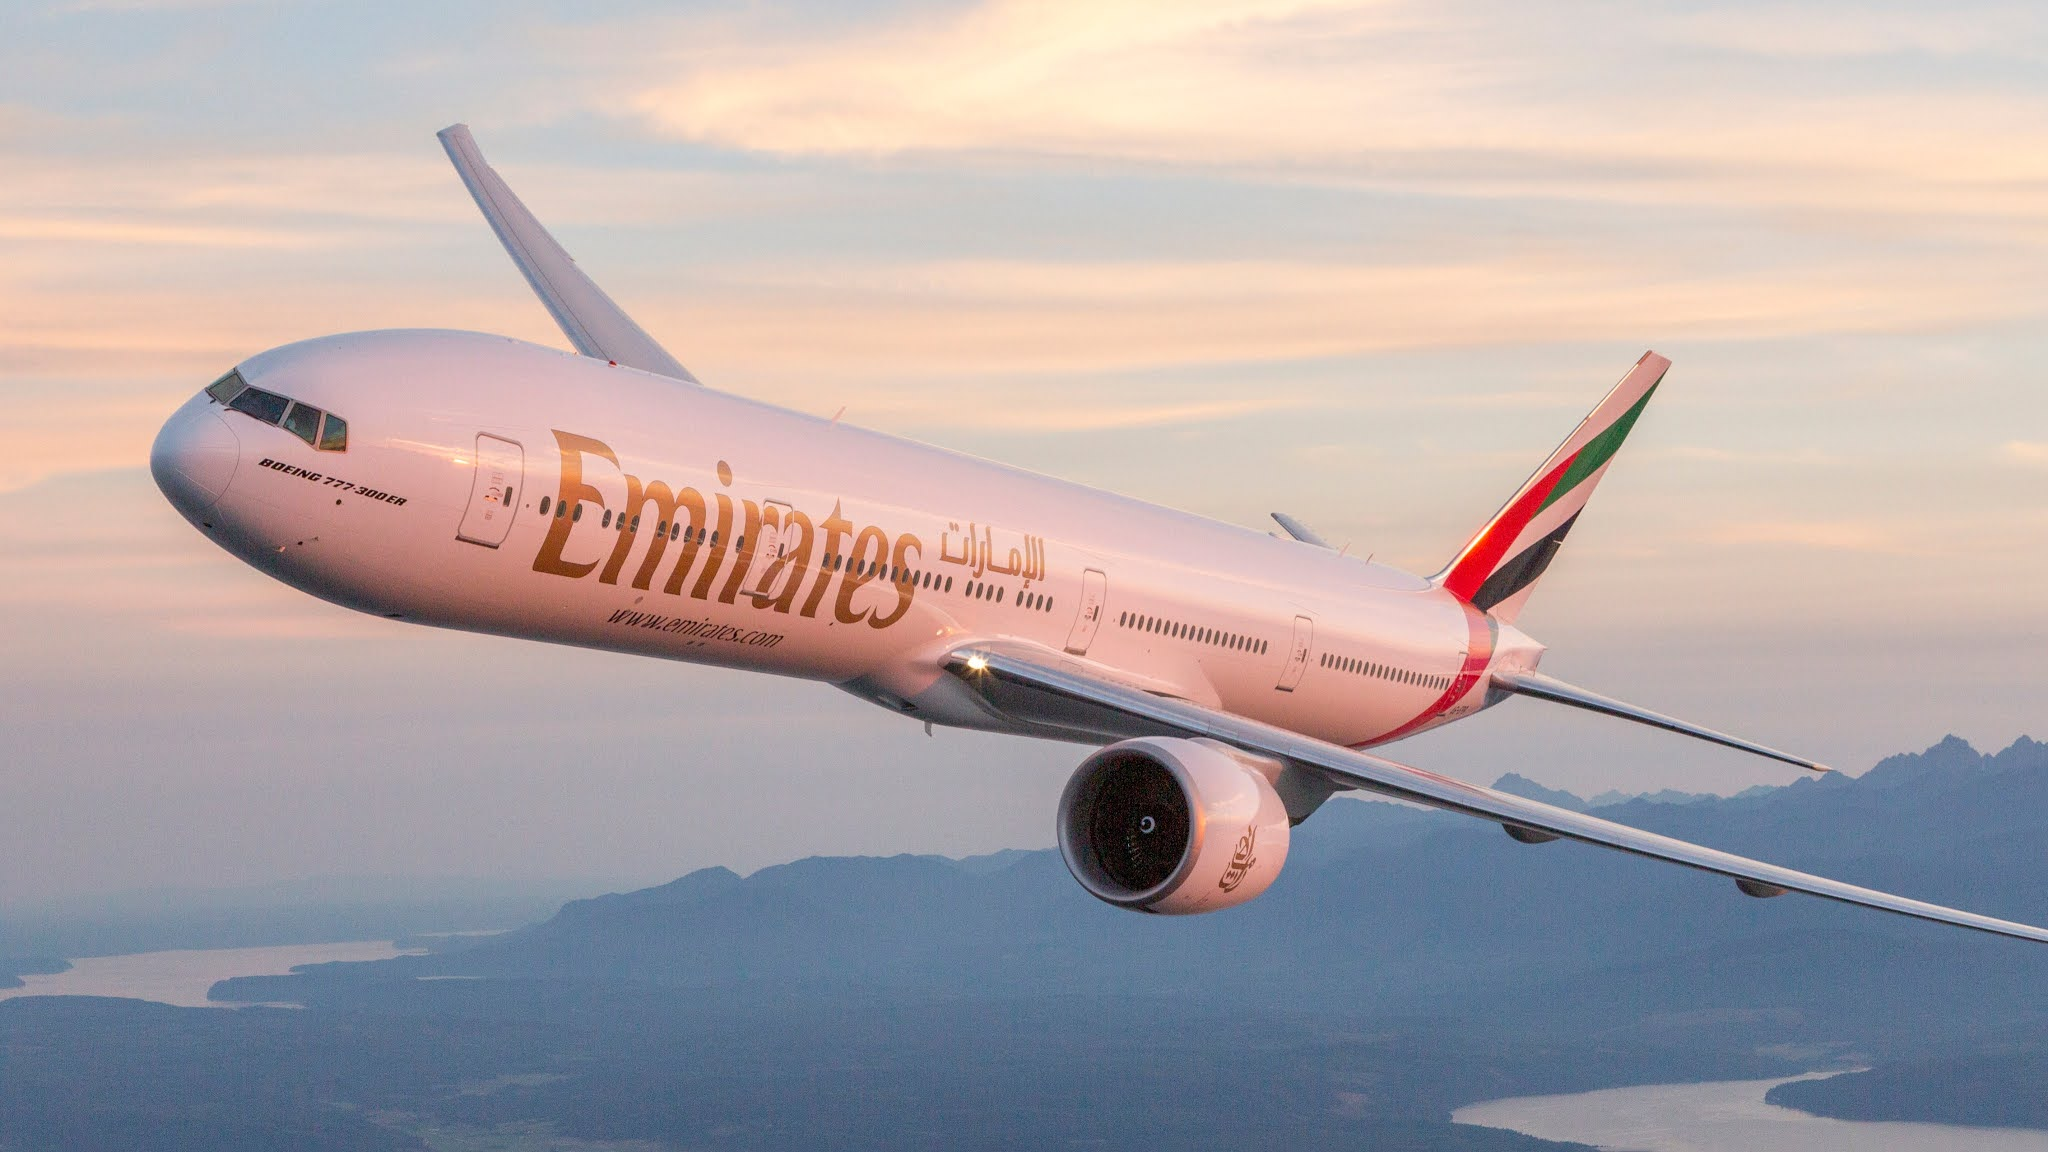 Emirates to restart Venice flights from 1 July - also set to increase services to Milan